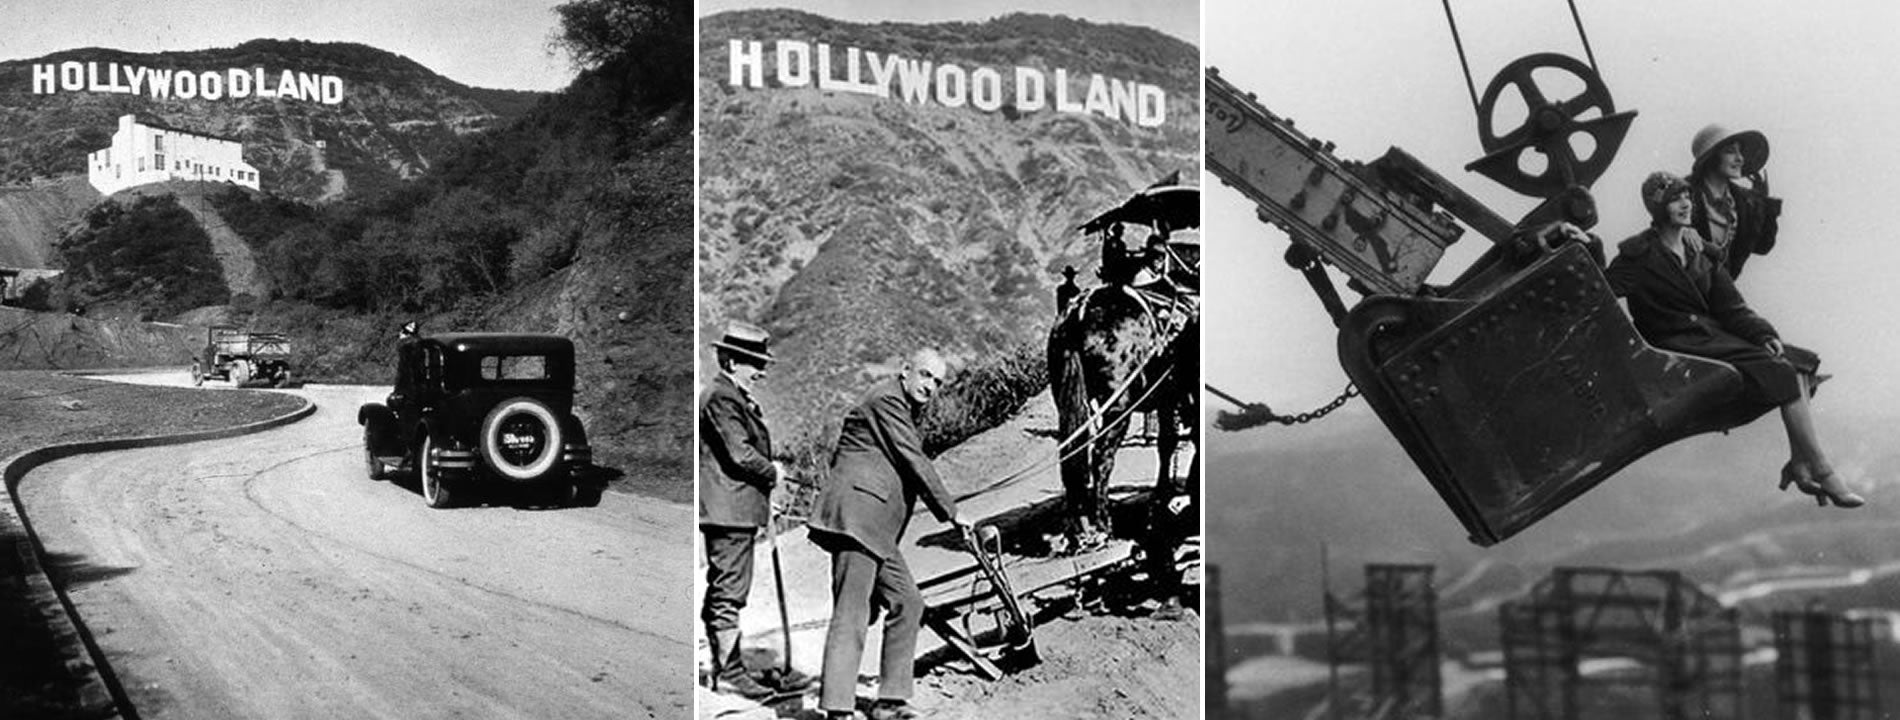 Hollywoodland Sign is Born